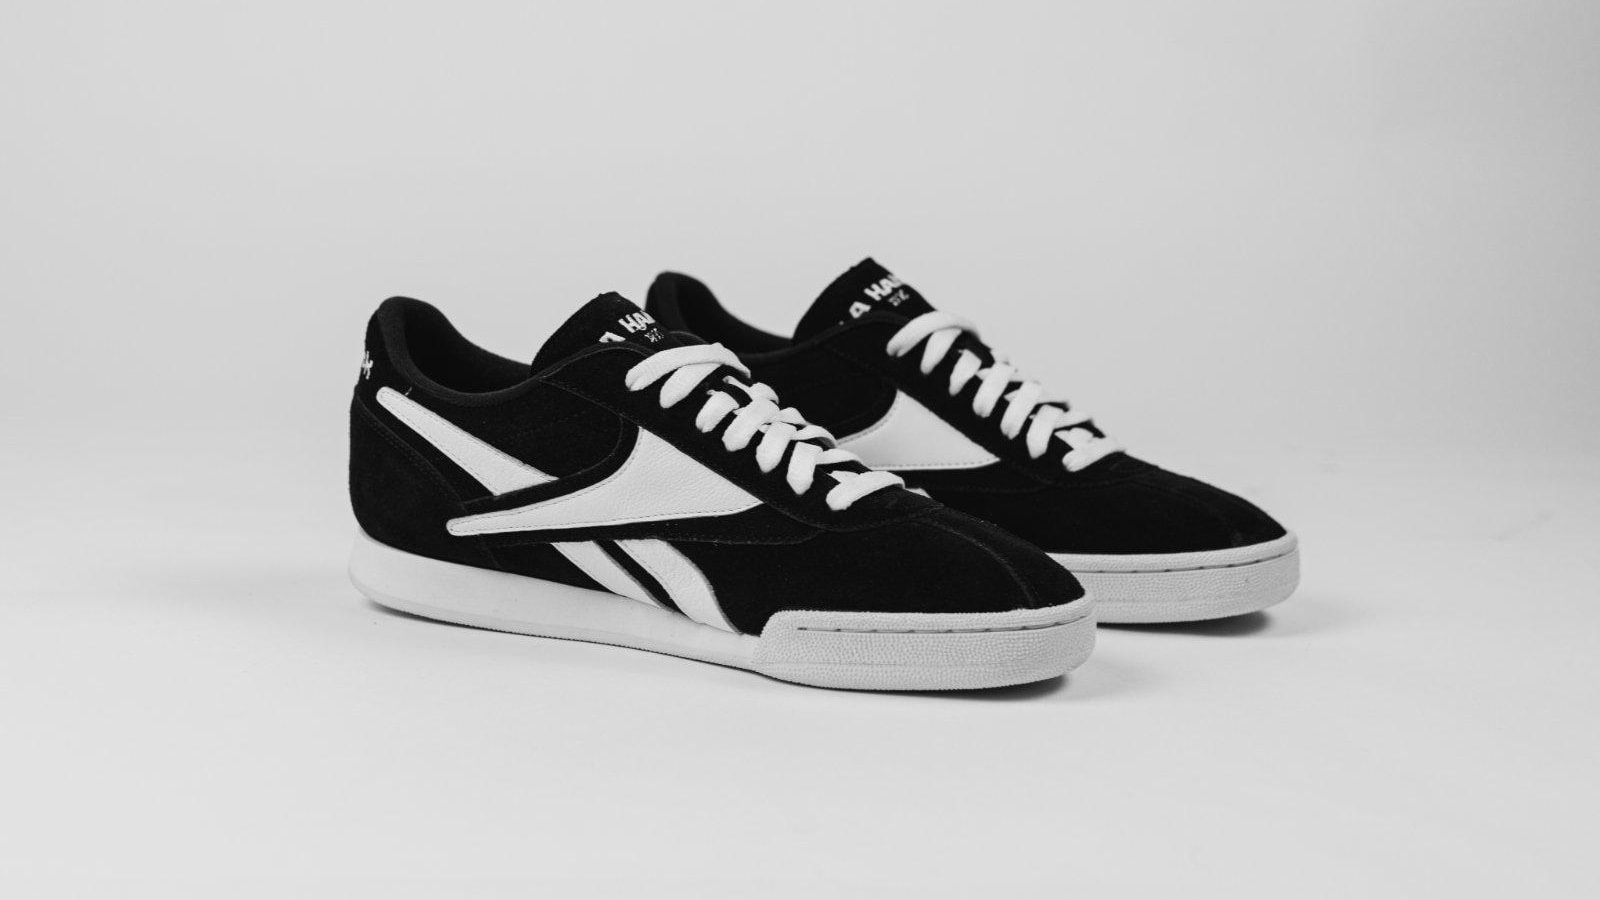 La Haine x Reebok NL Paris black and white